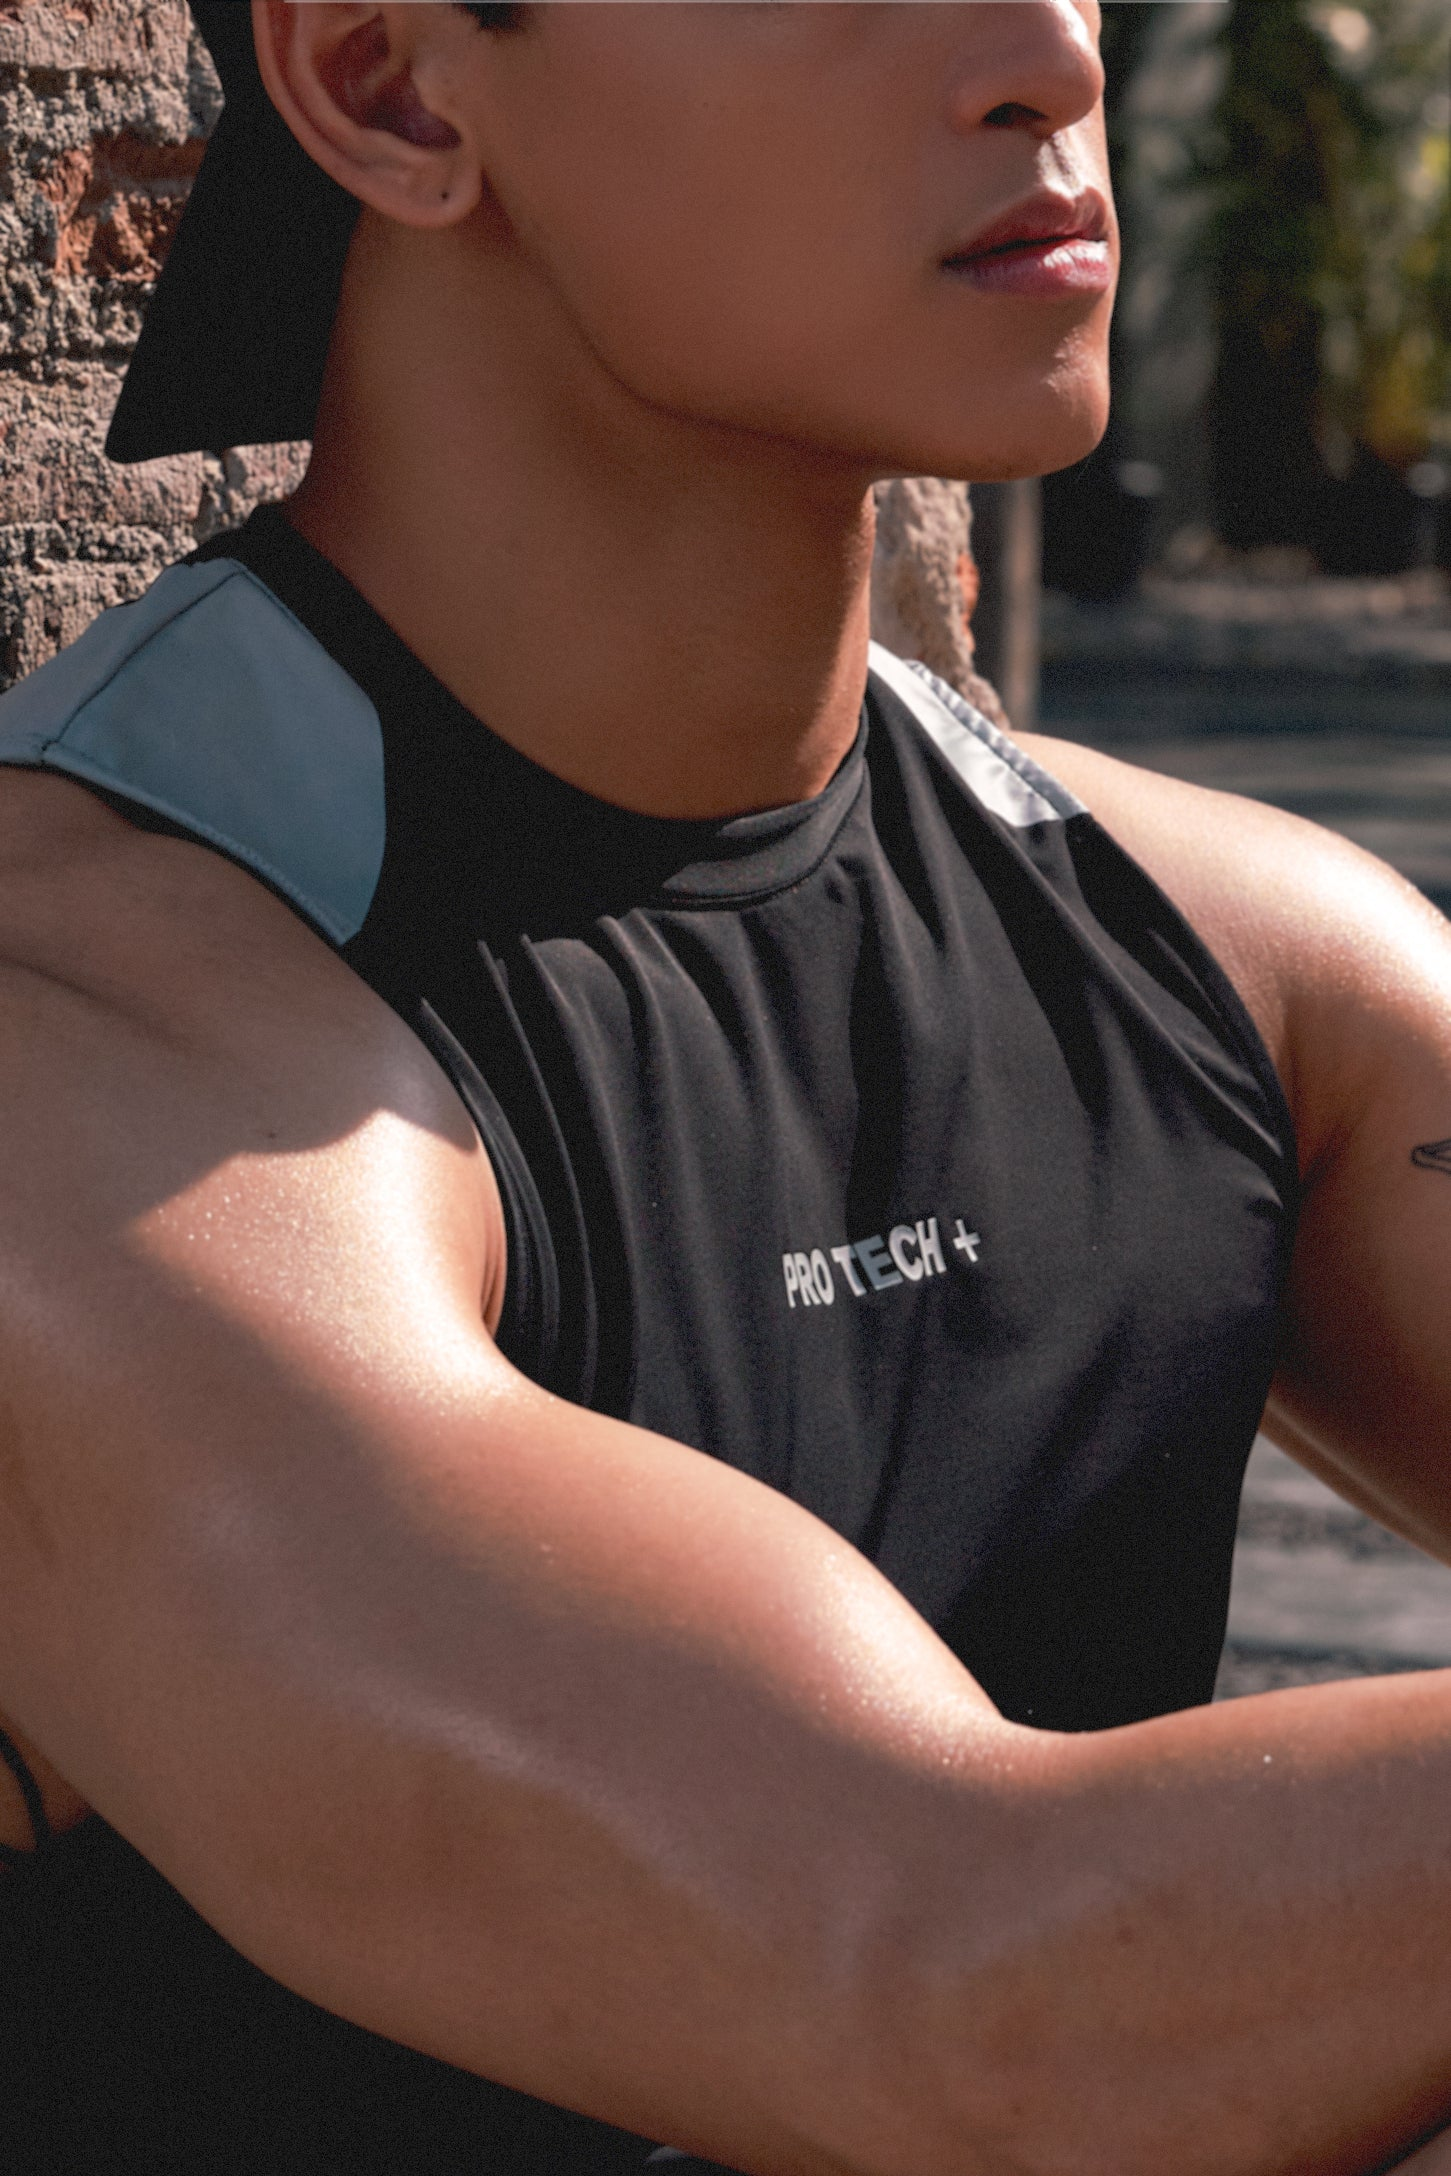 OMG® Pro Tech Sleeveless